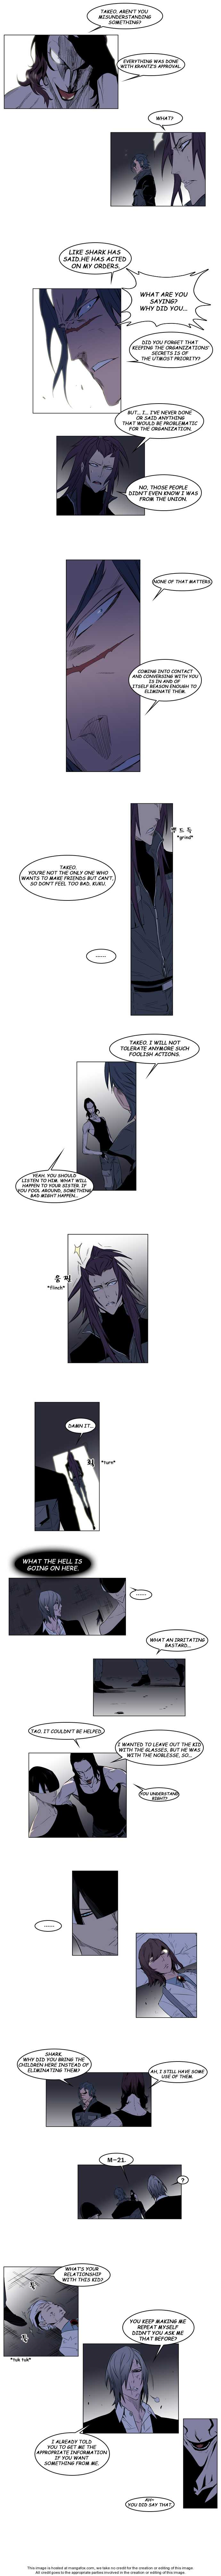 Noblesse 125 Page 3